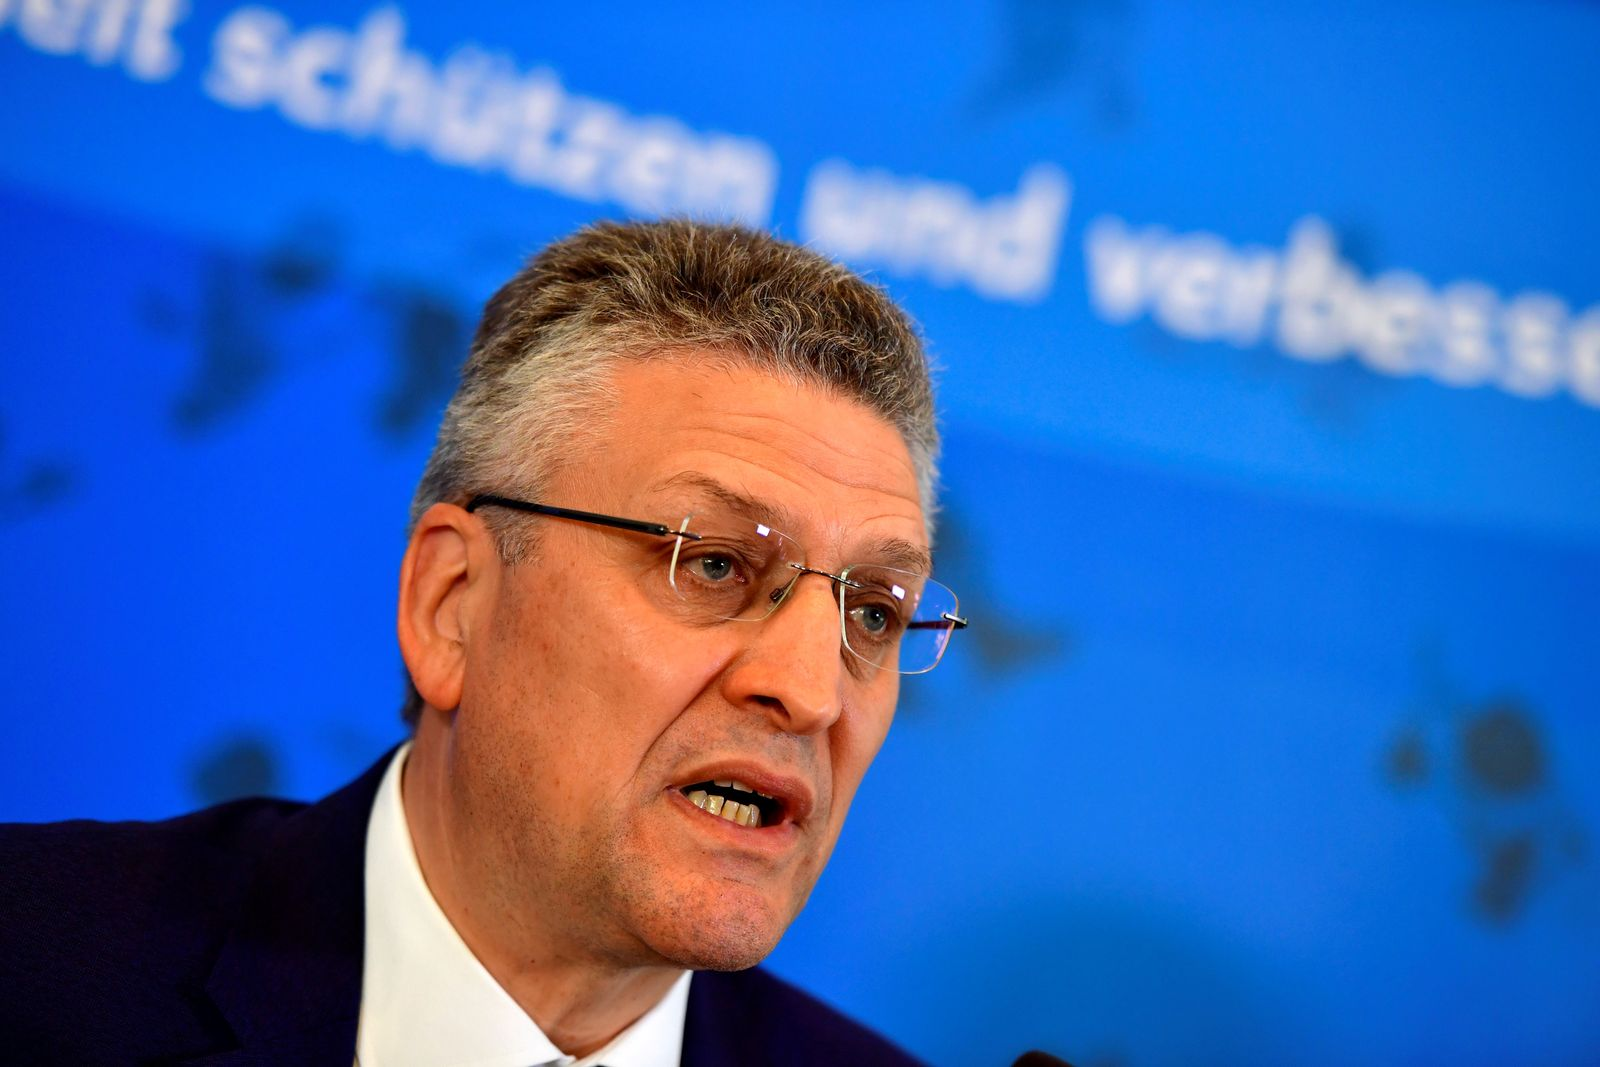 RKI holds briefing after Germany's coronavirus reproduction rate jumped